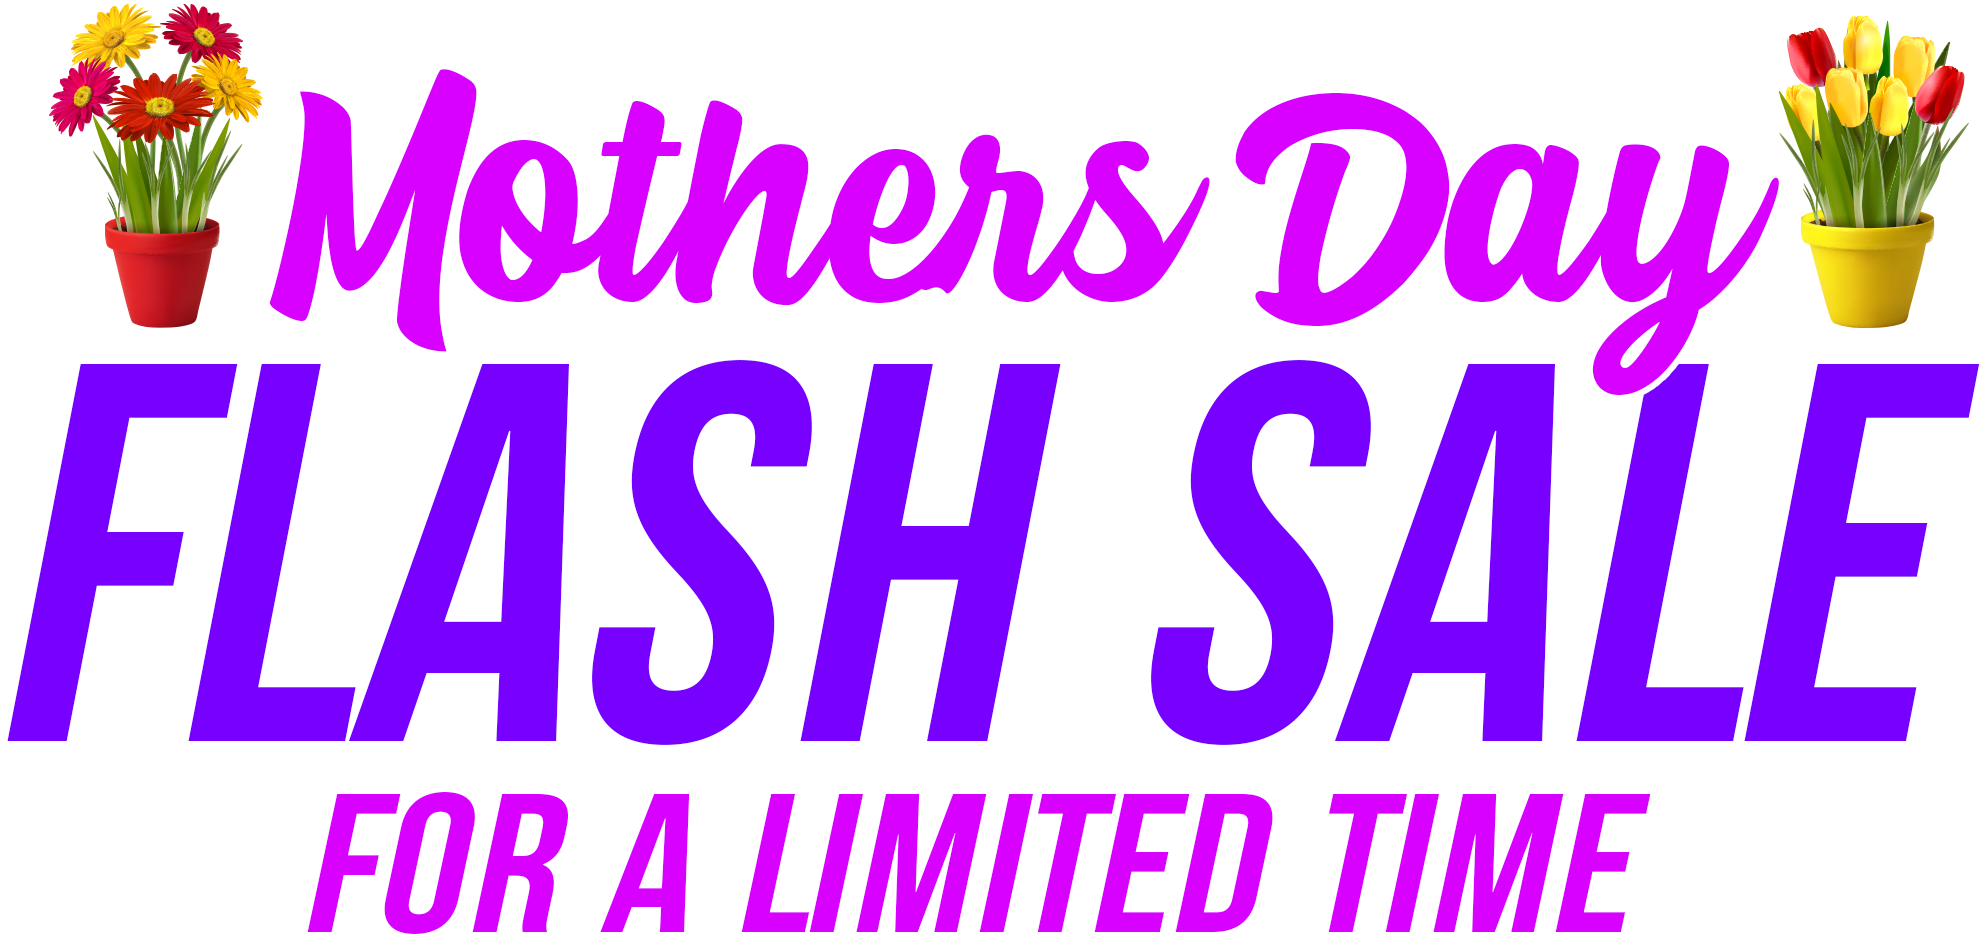 Mothers-Day-Flash-flowers.png